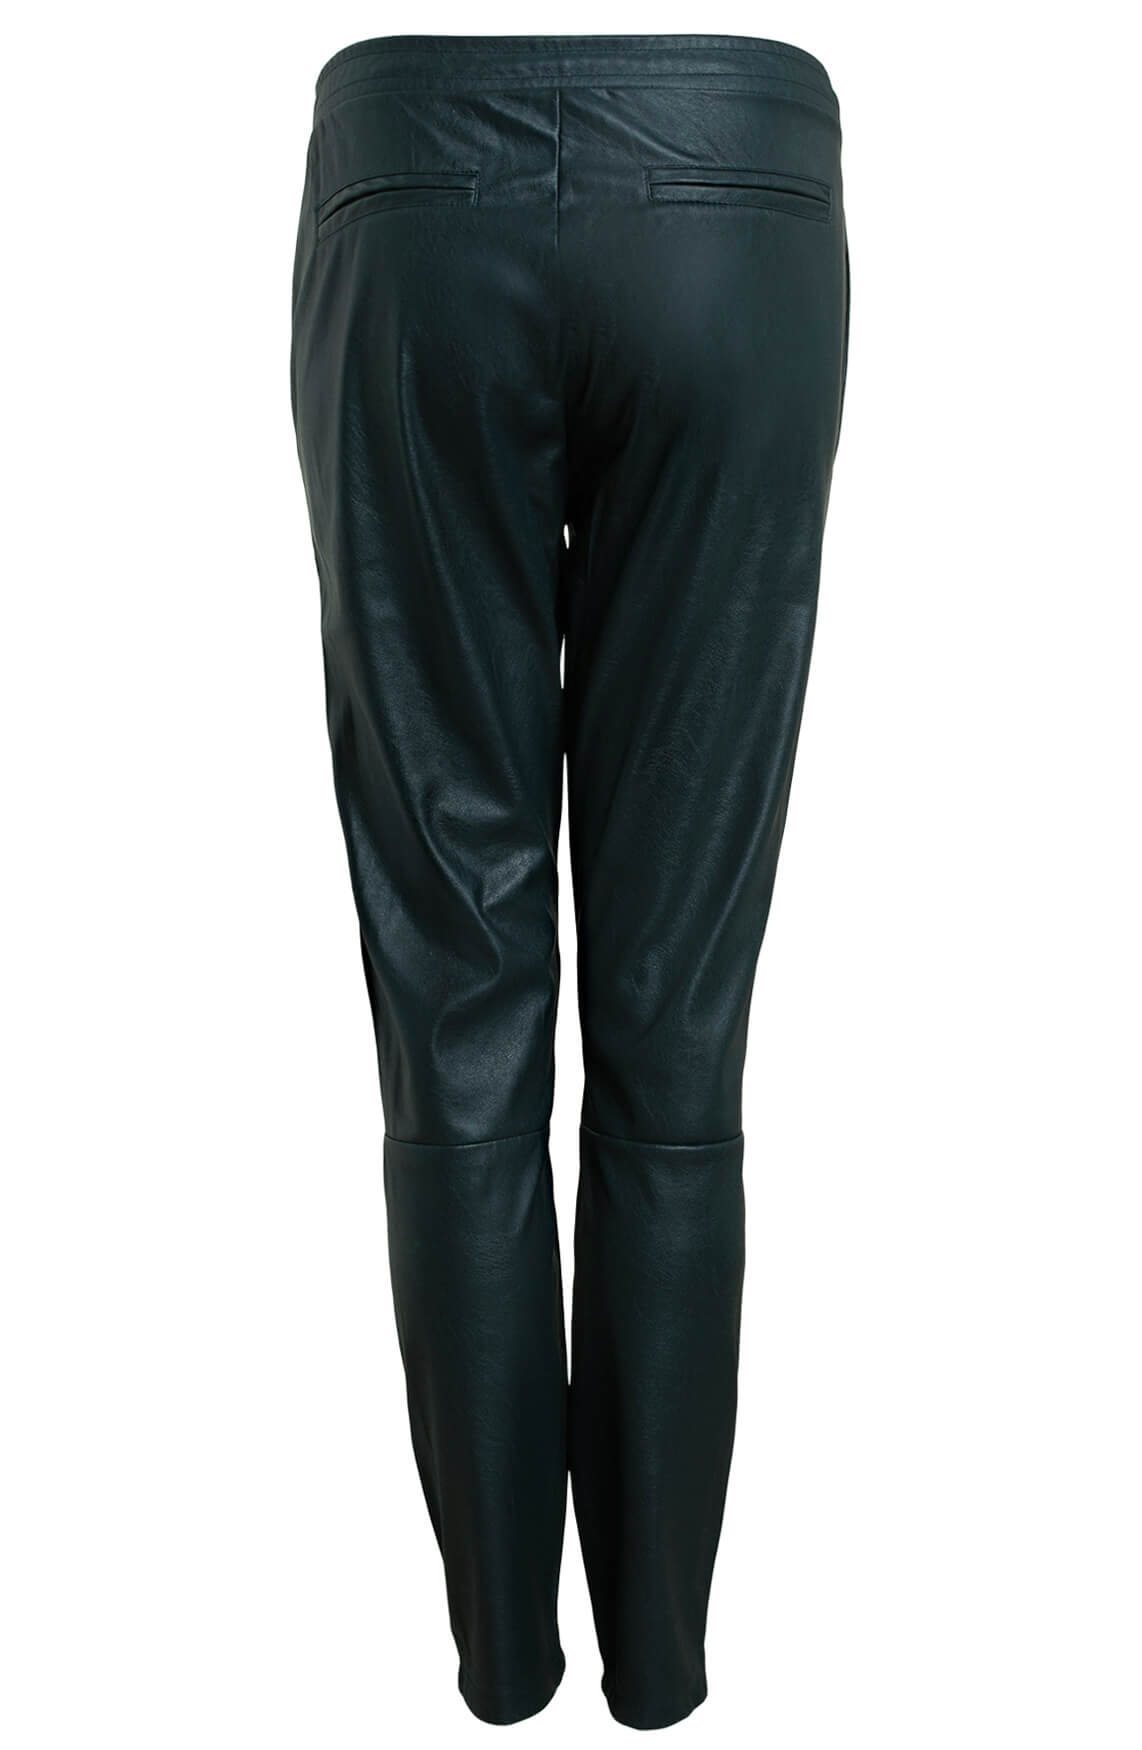 Anna Dames Fake leather broek groen